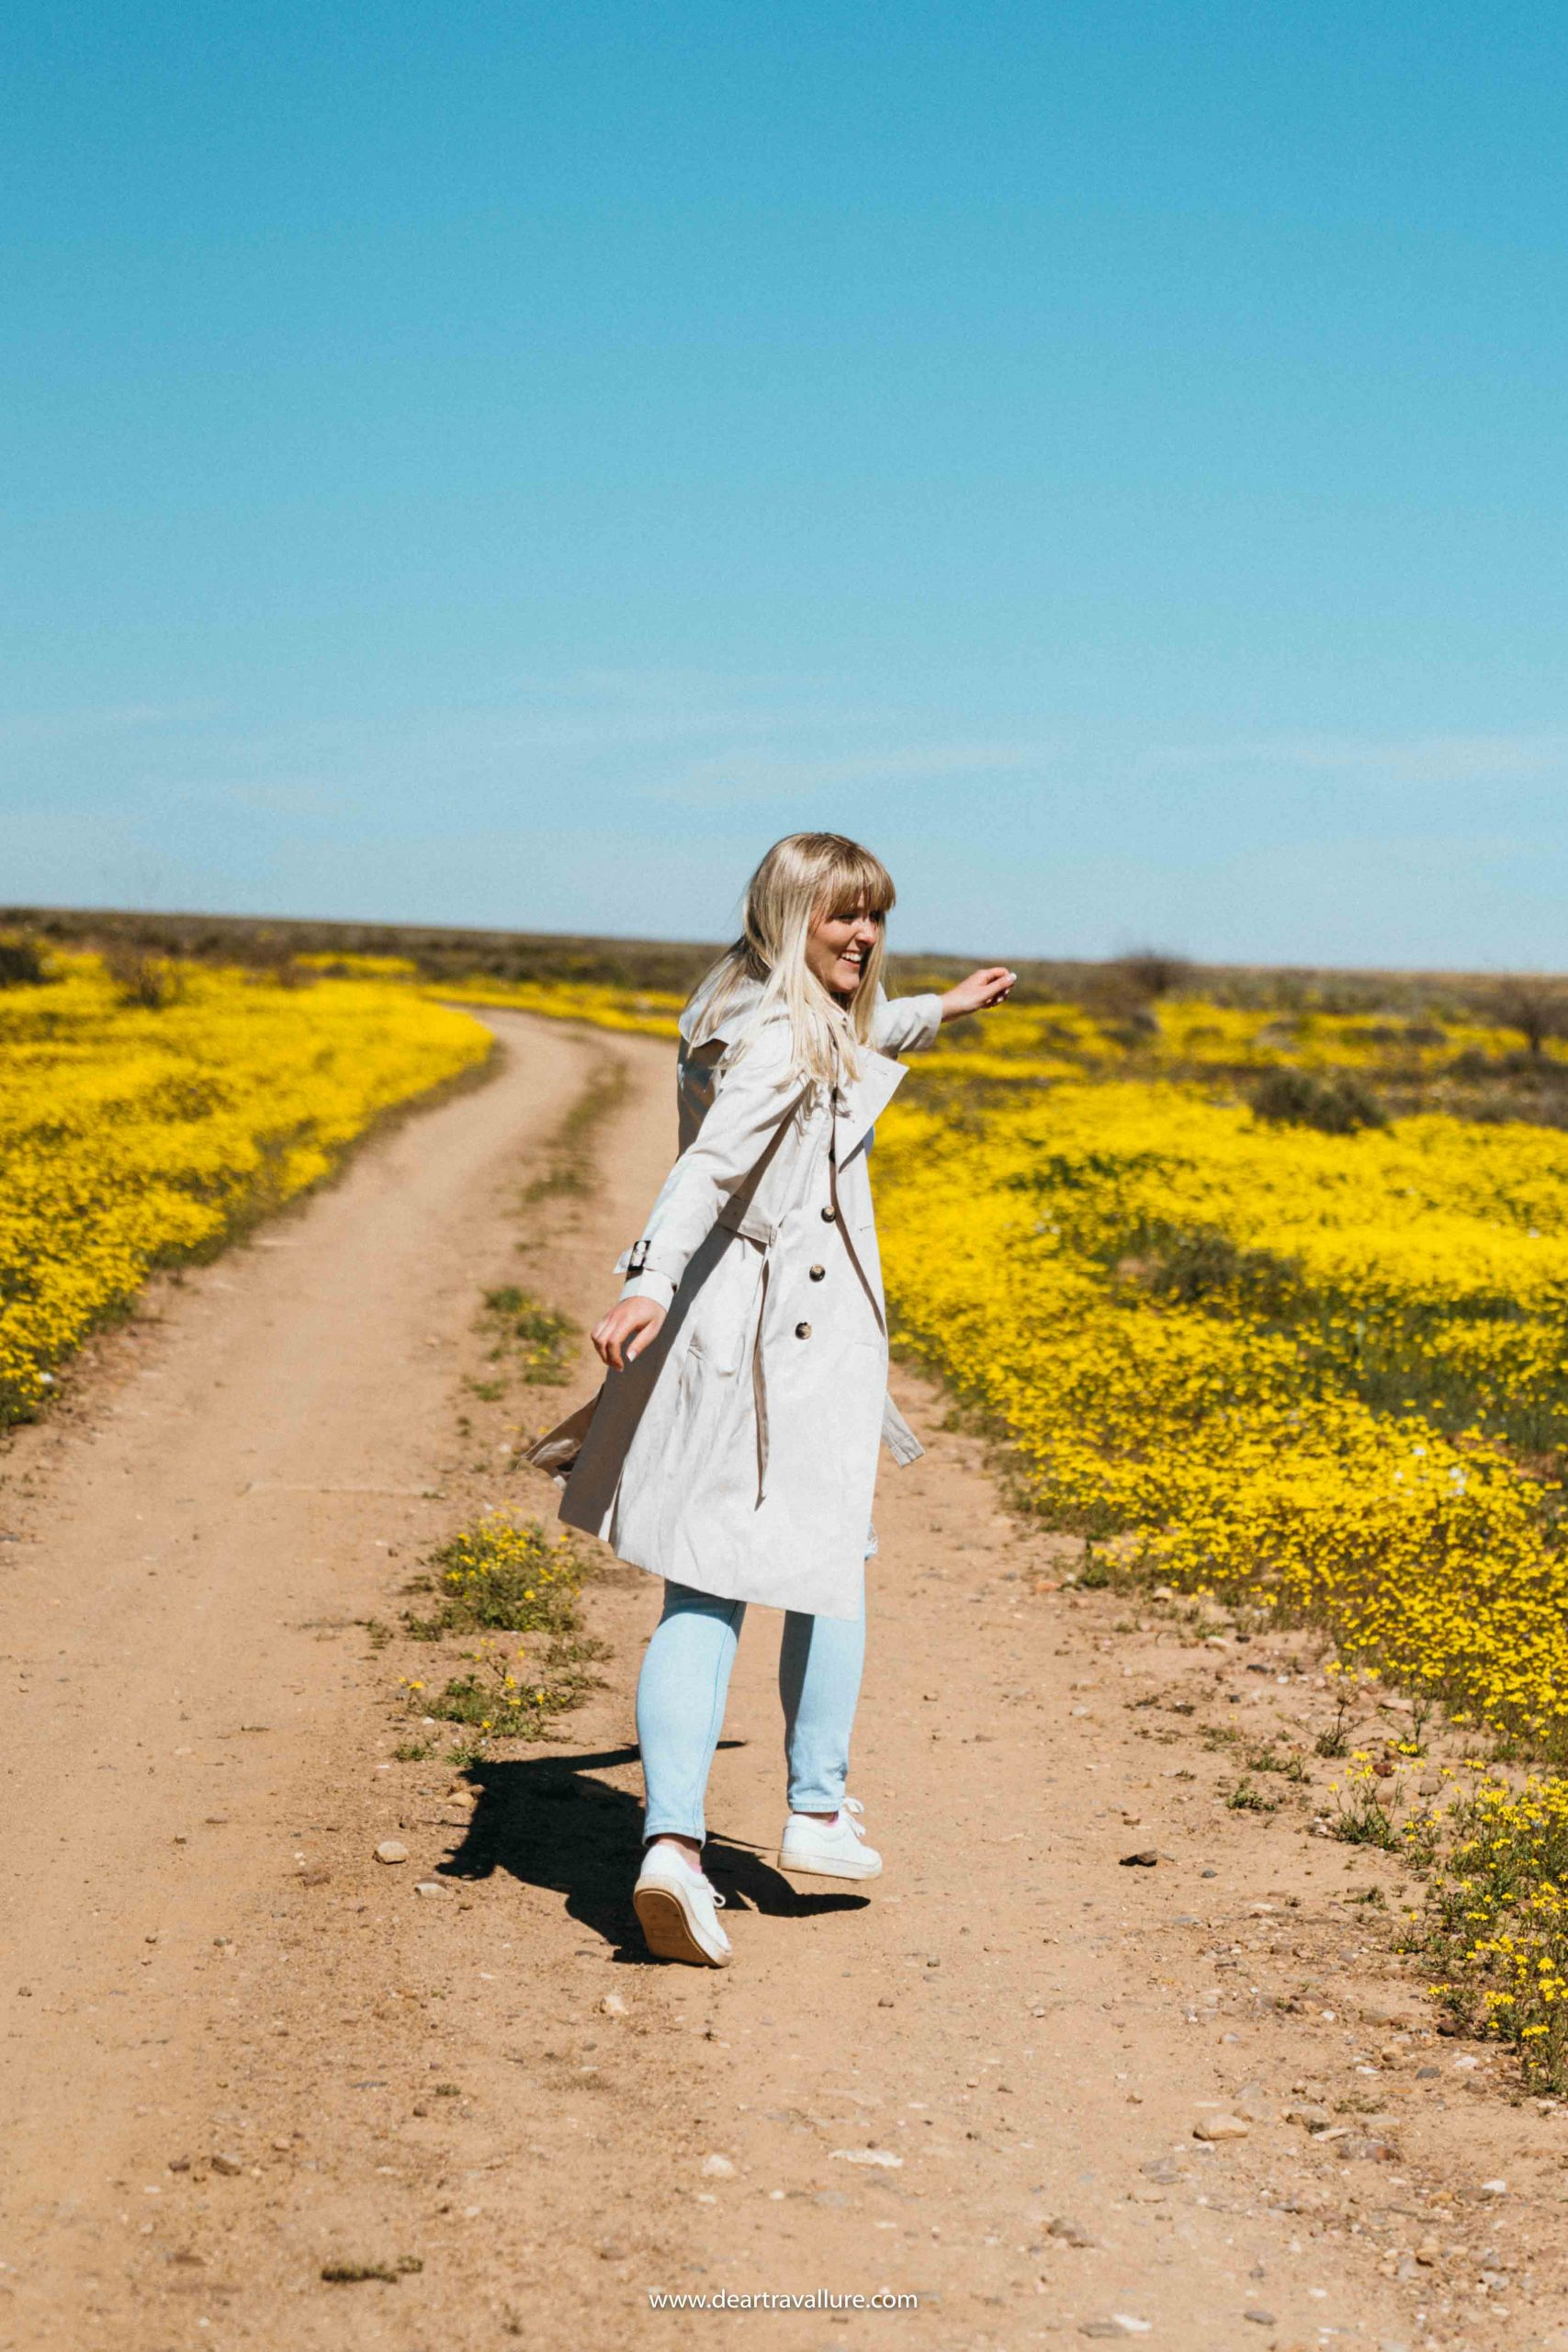 Tammy running along a dirt road amidst yellow flowers